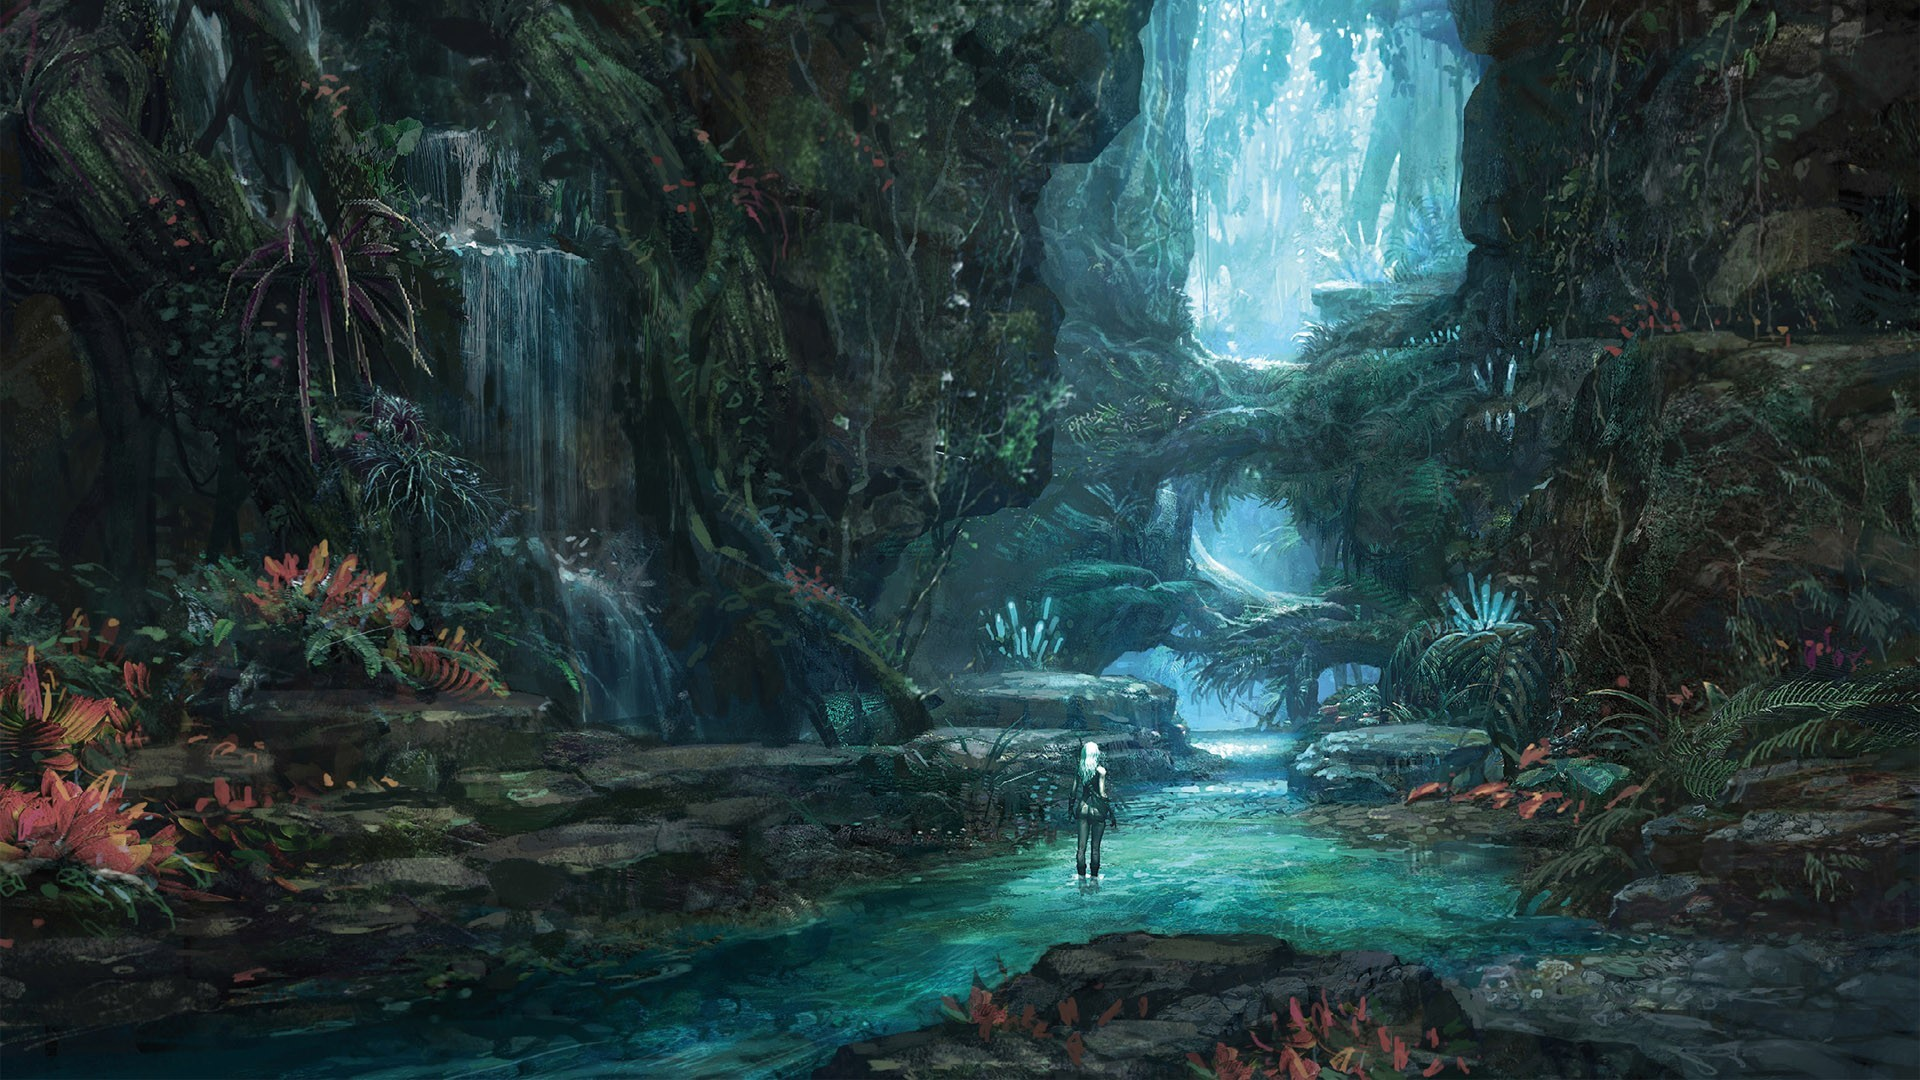 1920x1080 Video Game - Tera Waterfall Forest MMORPG Wallpaper